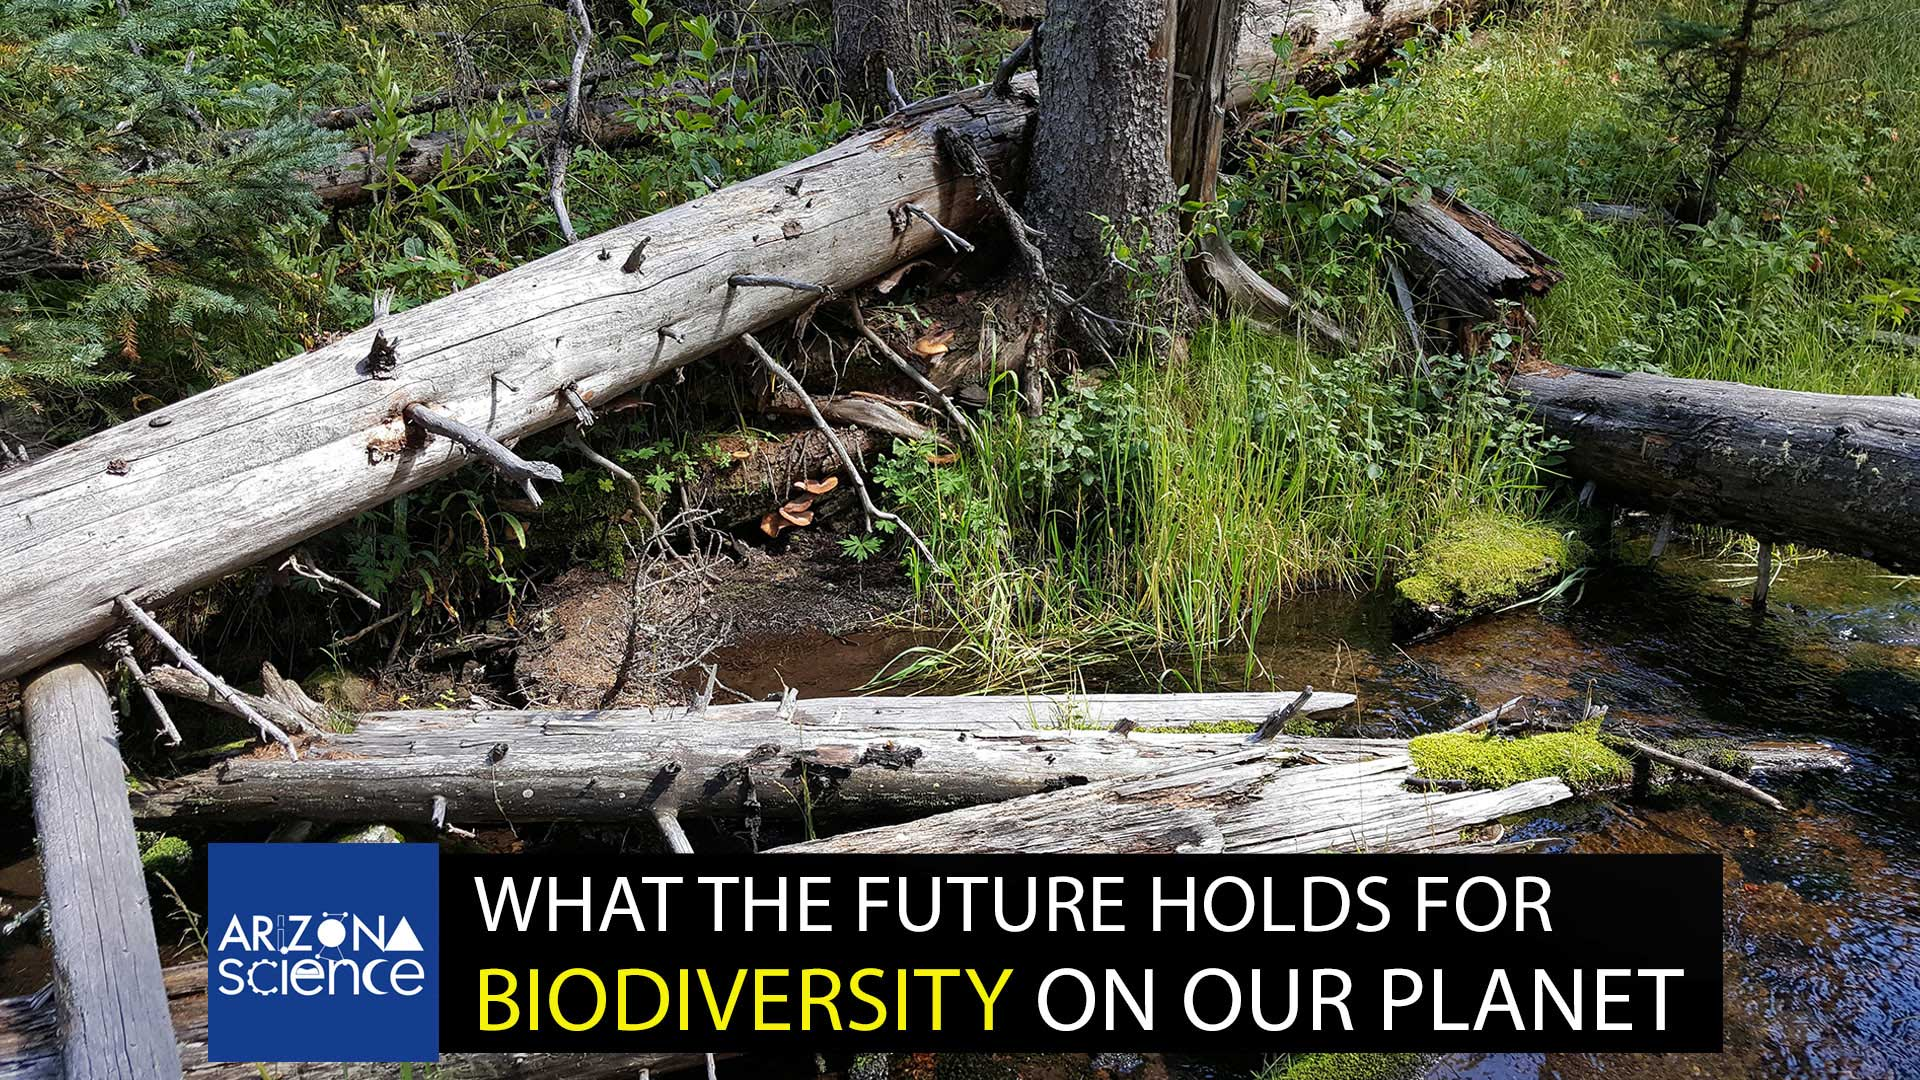 What the future holds for biodiversity on our planet